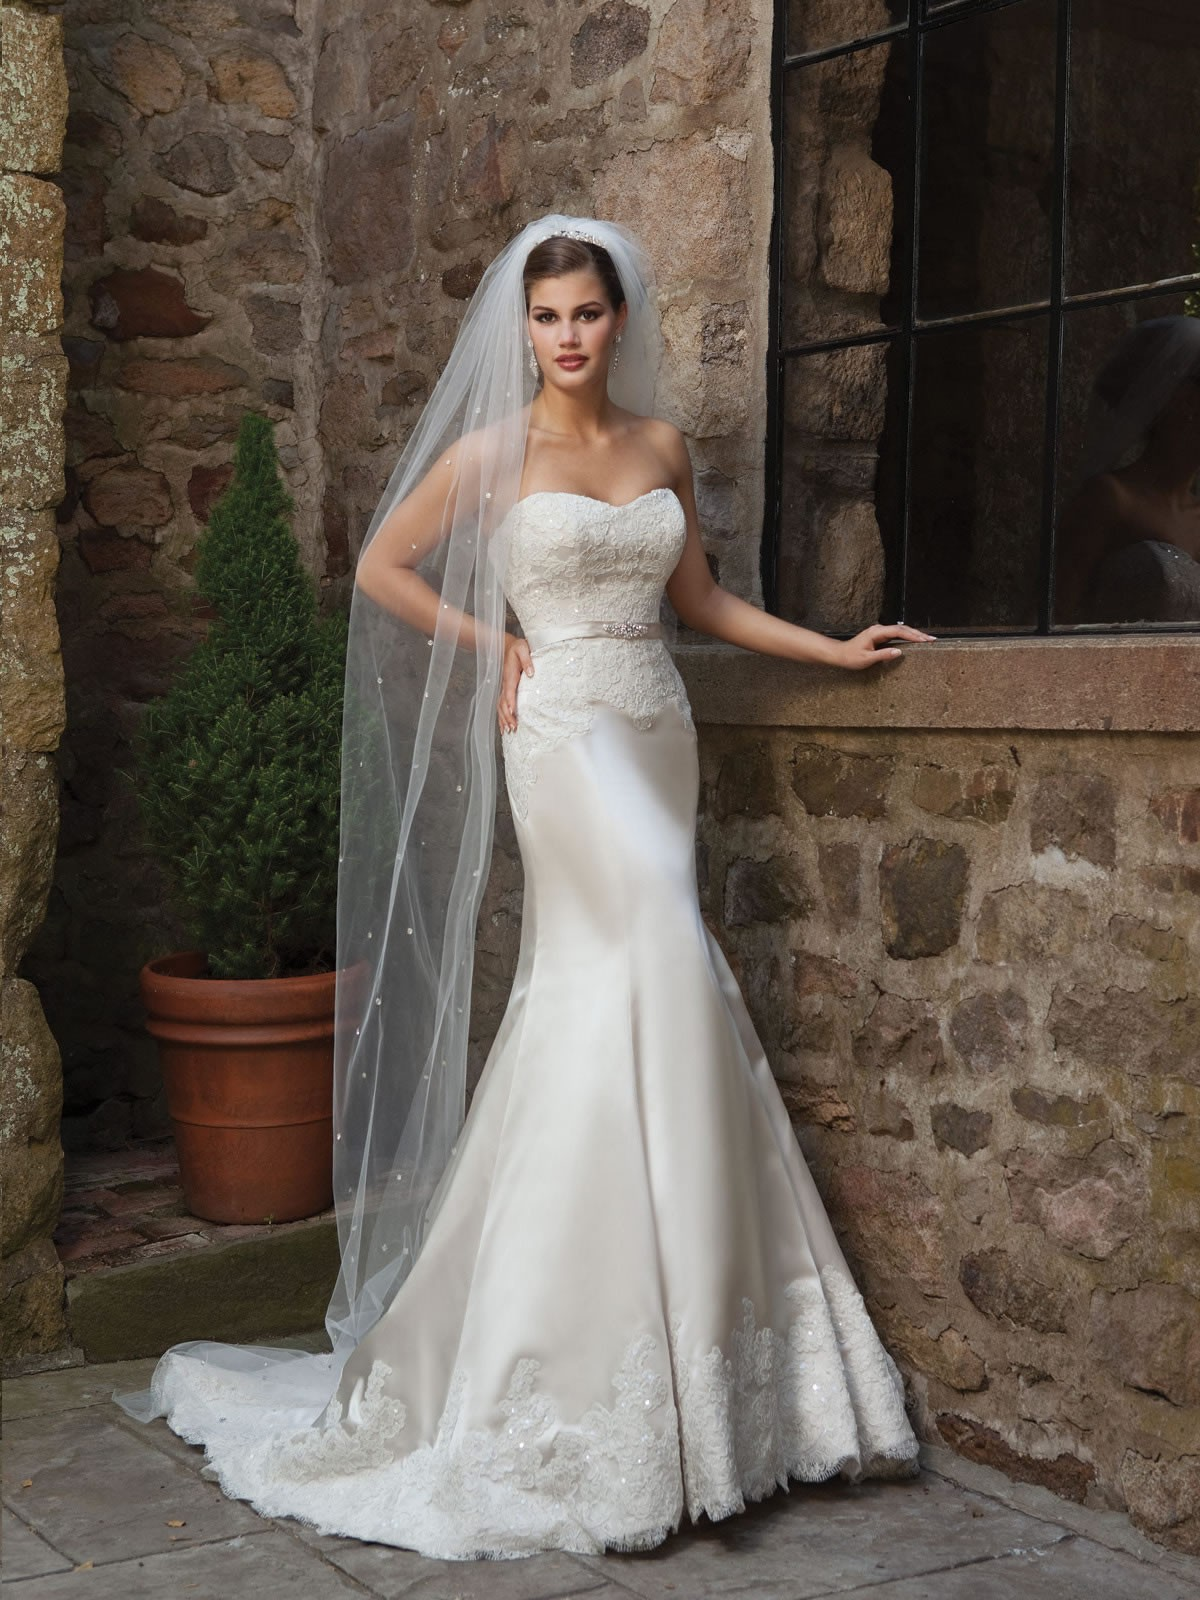 mermaid wedding dresses an elegant choice for brides ForSatin Mermaid Style Wedding Dresses